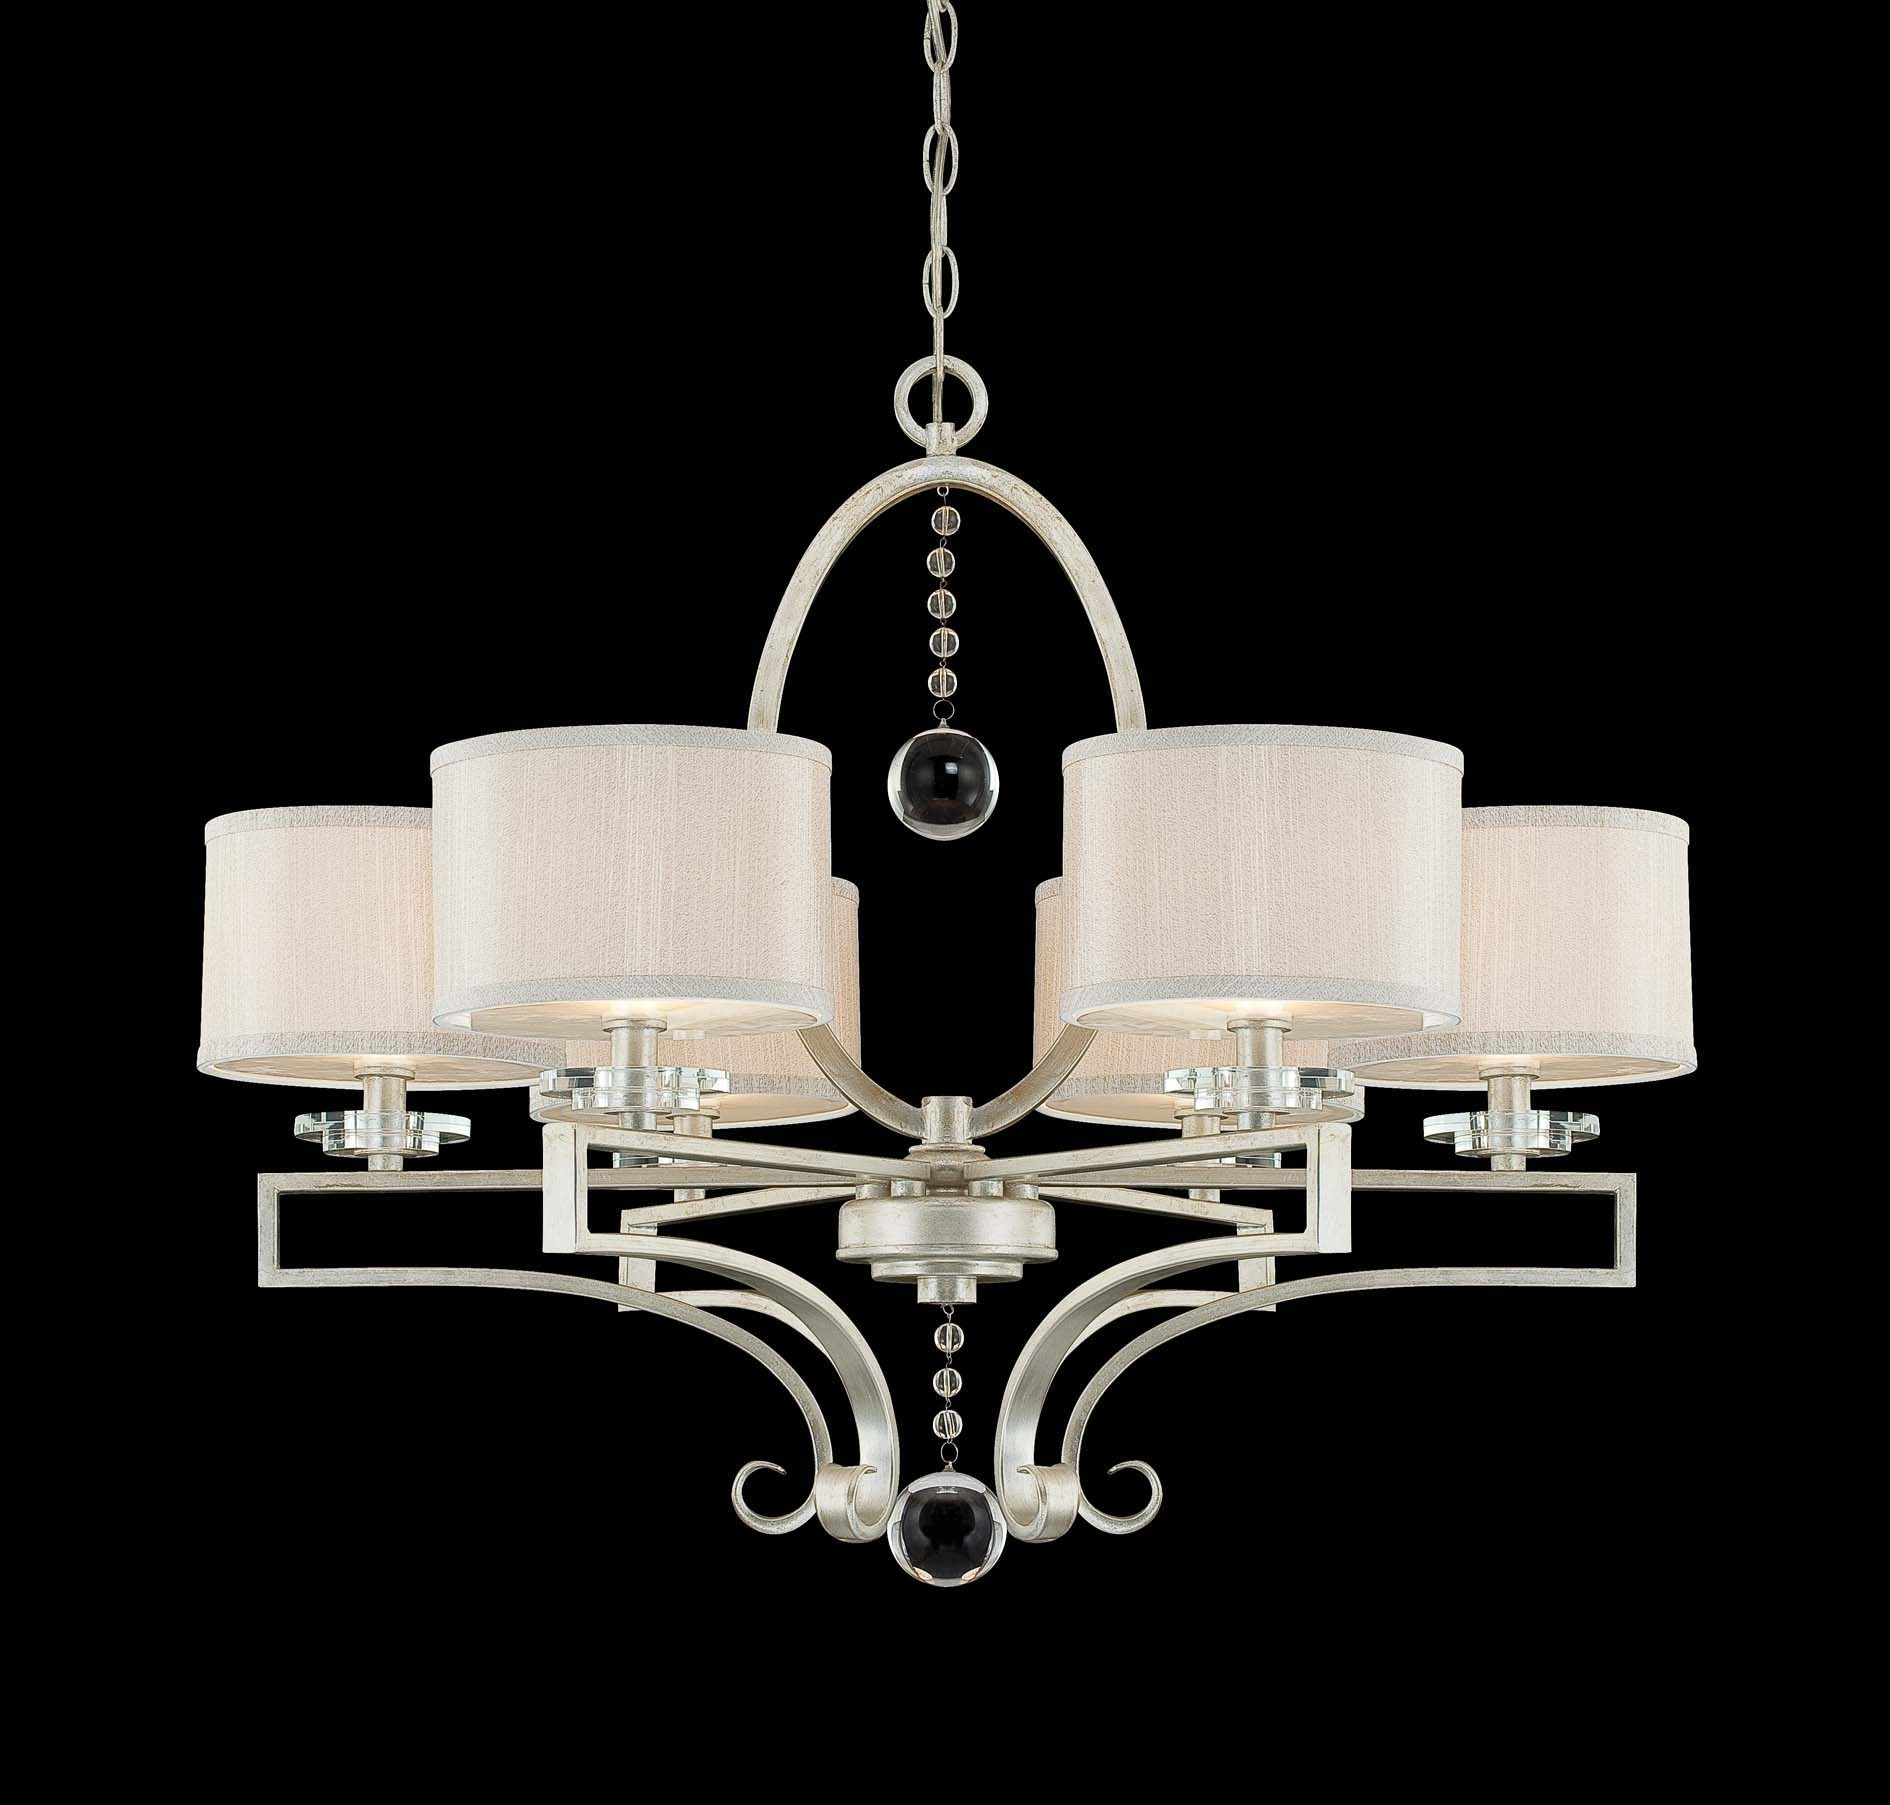 House 1 250 6 307 Rosendal 6 Light Chandelier In Silver Sparkle Intended For Savoy House Chandeliers (Image 2 of 25)